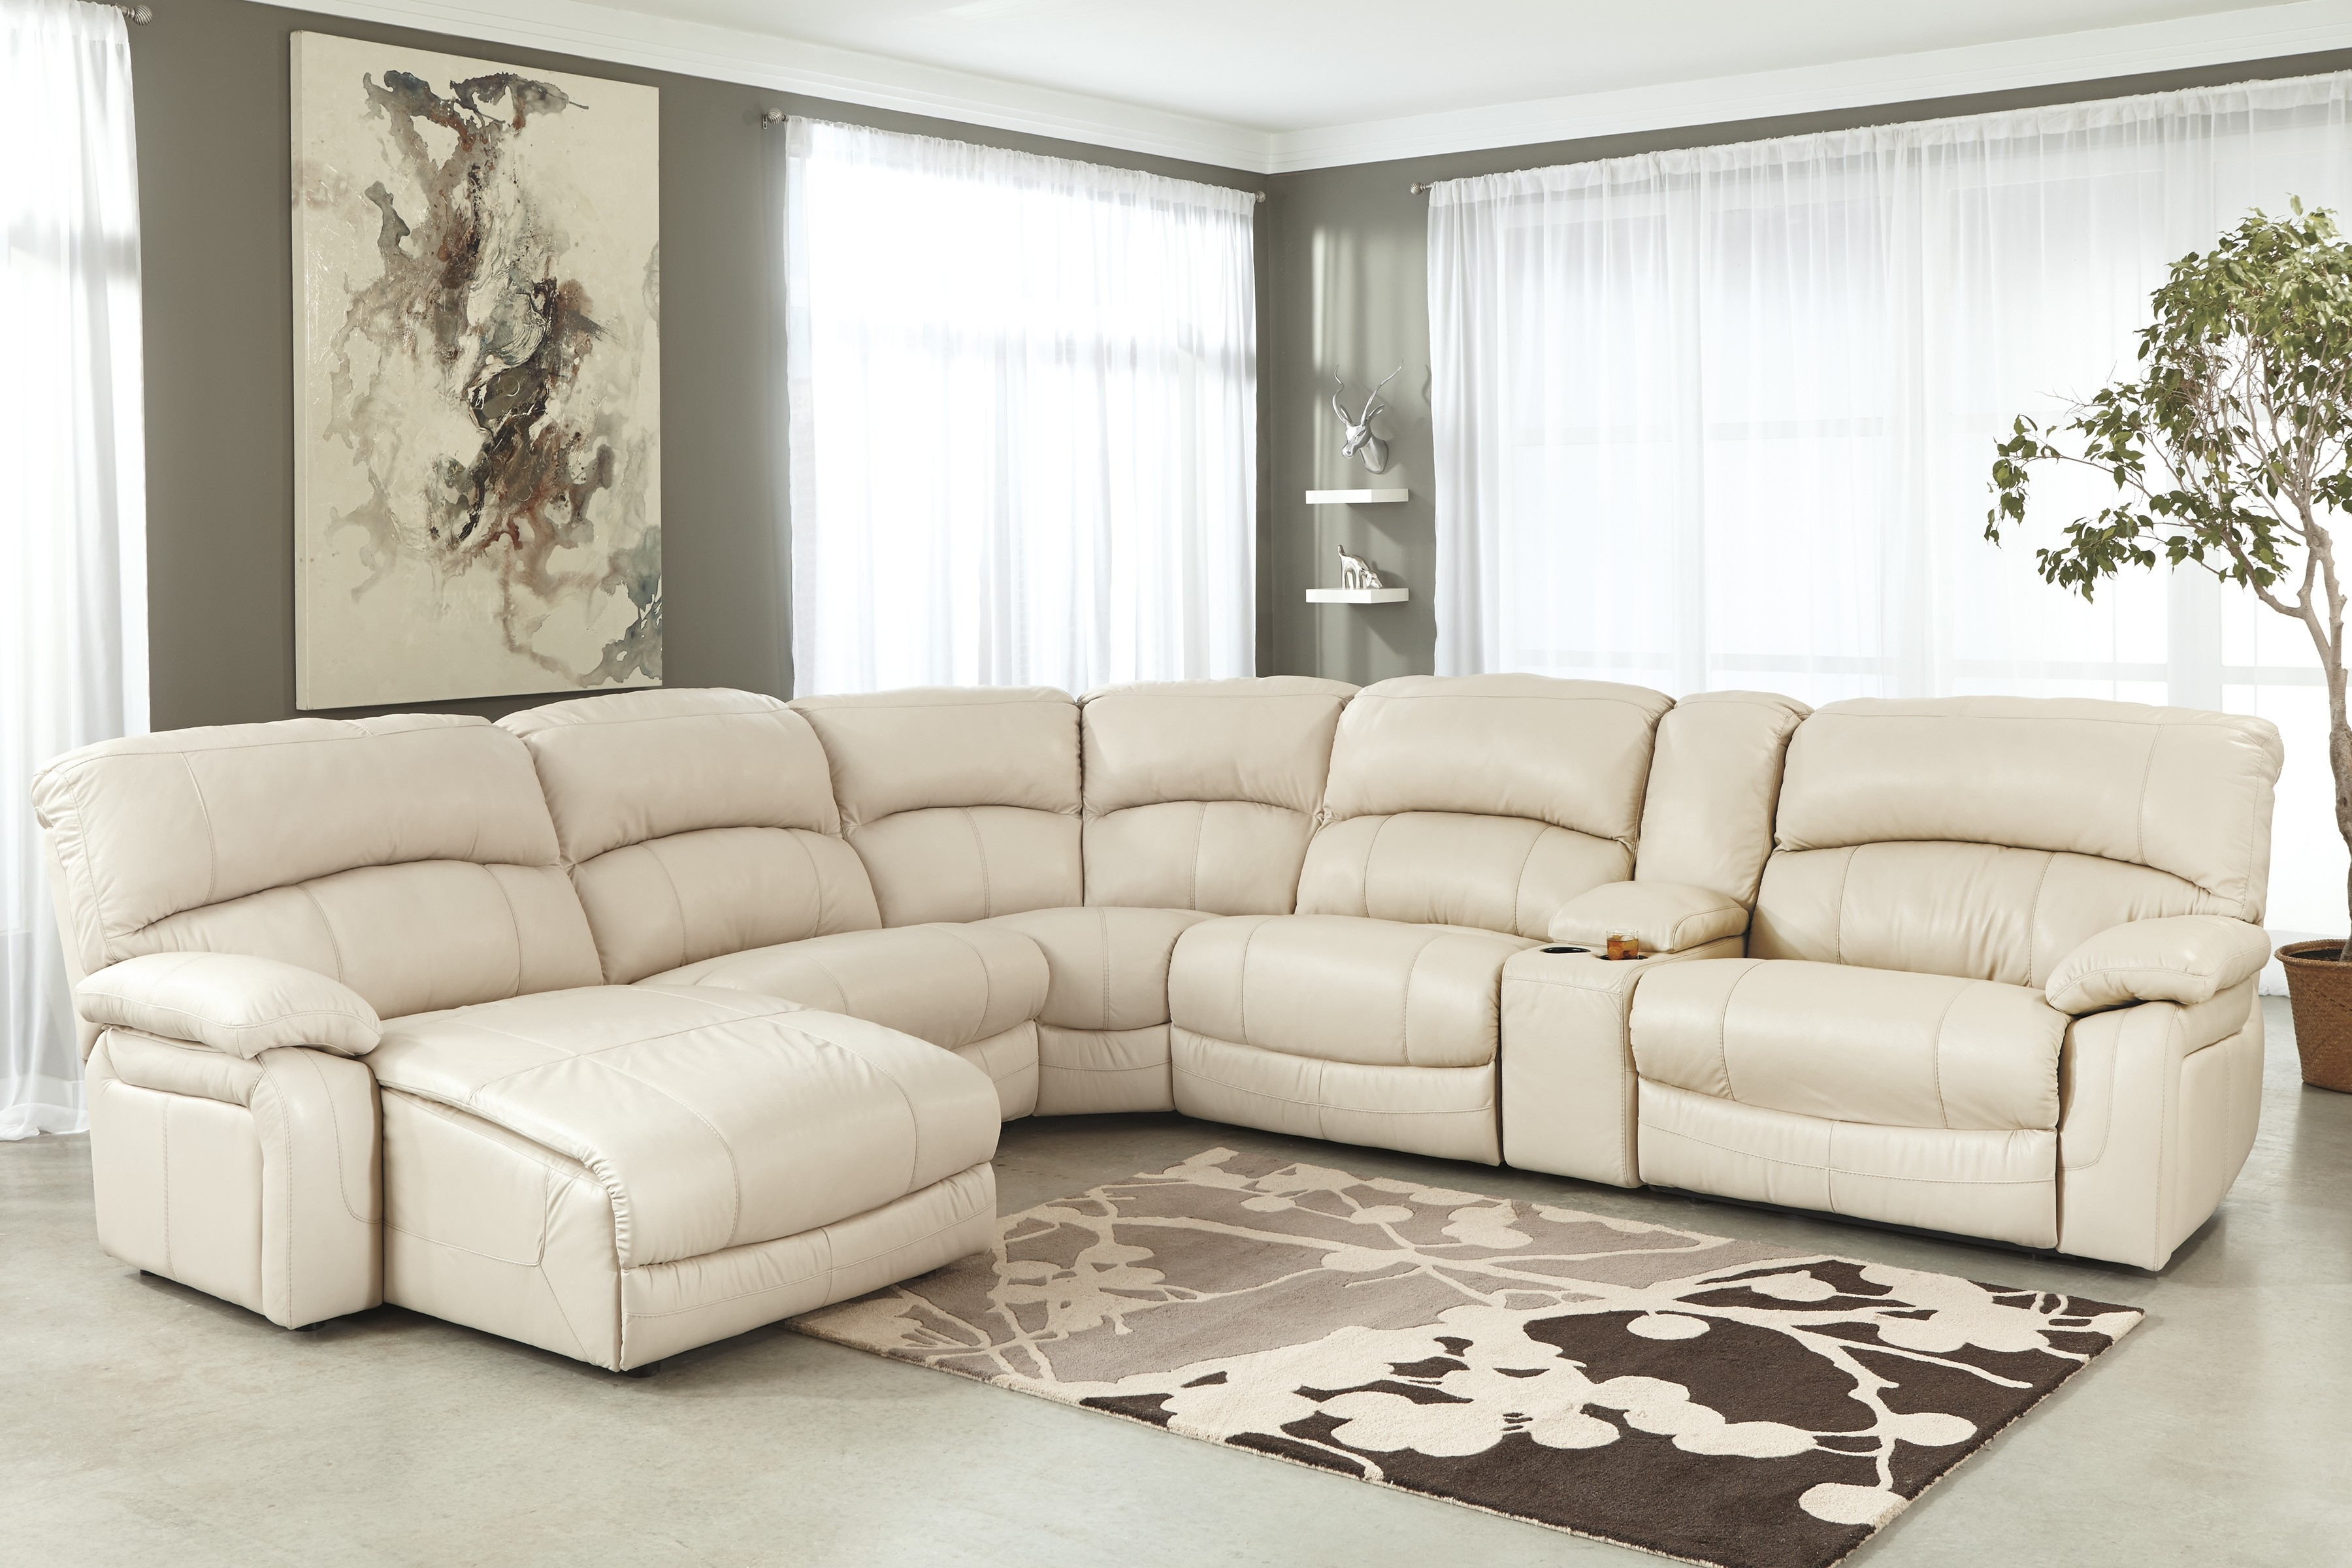 Sectional Sofa Design: Most Inspired White Leather Sectional Sofa With Regard To Recent U Shaped Leather Sectional Sofas (View 5 of 15)